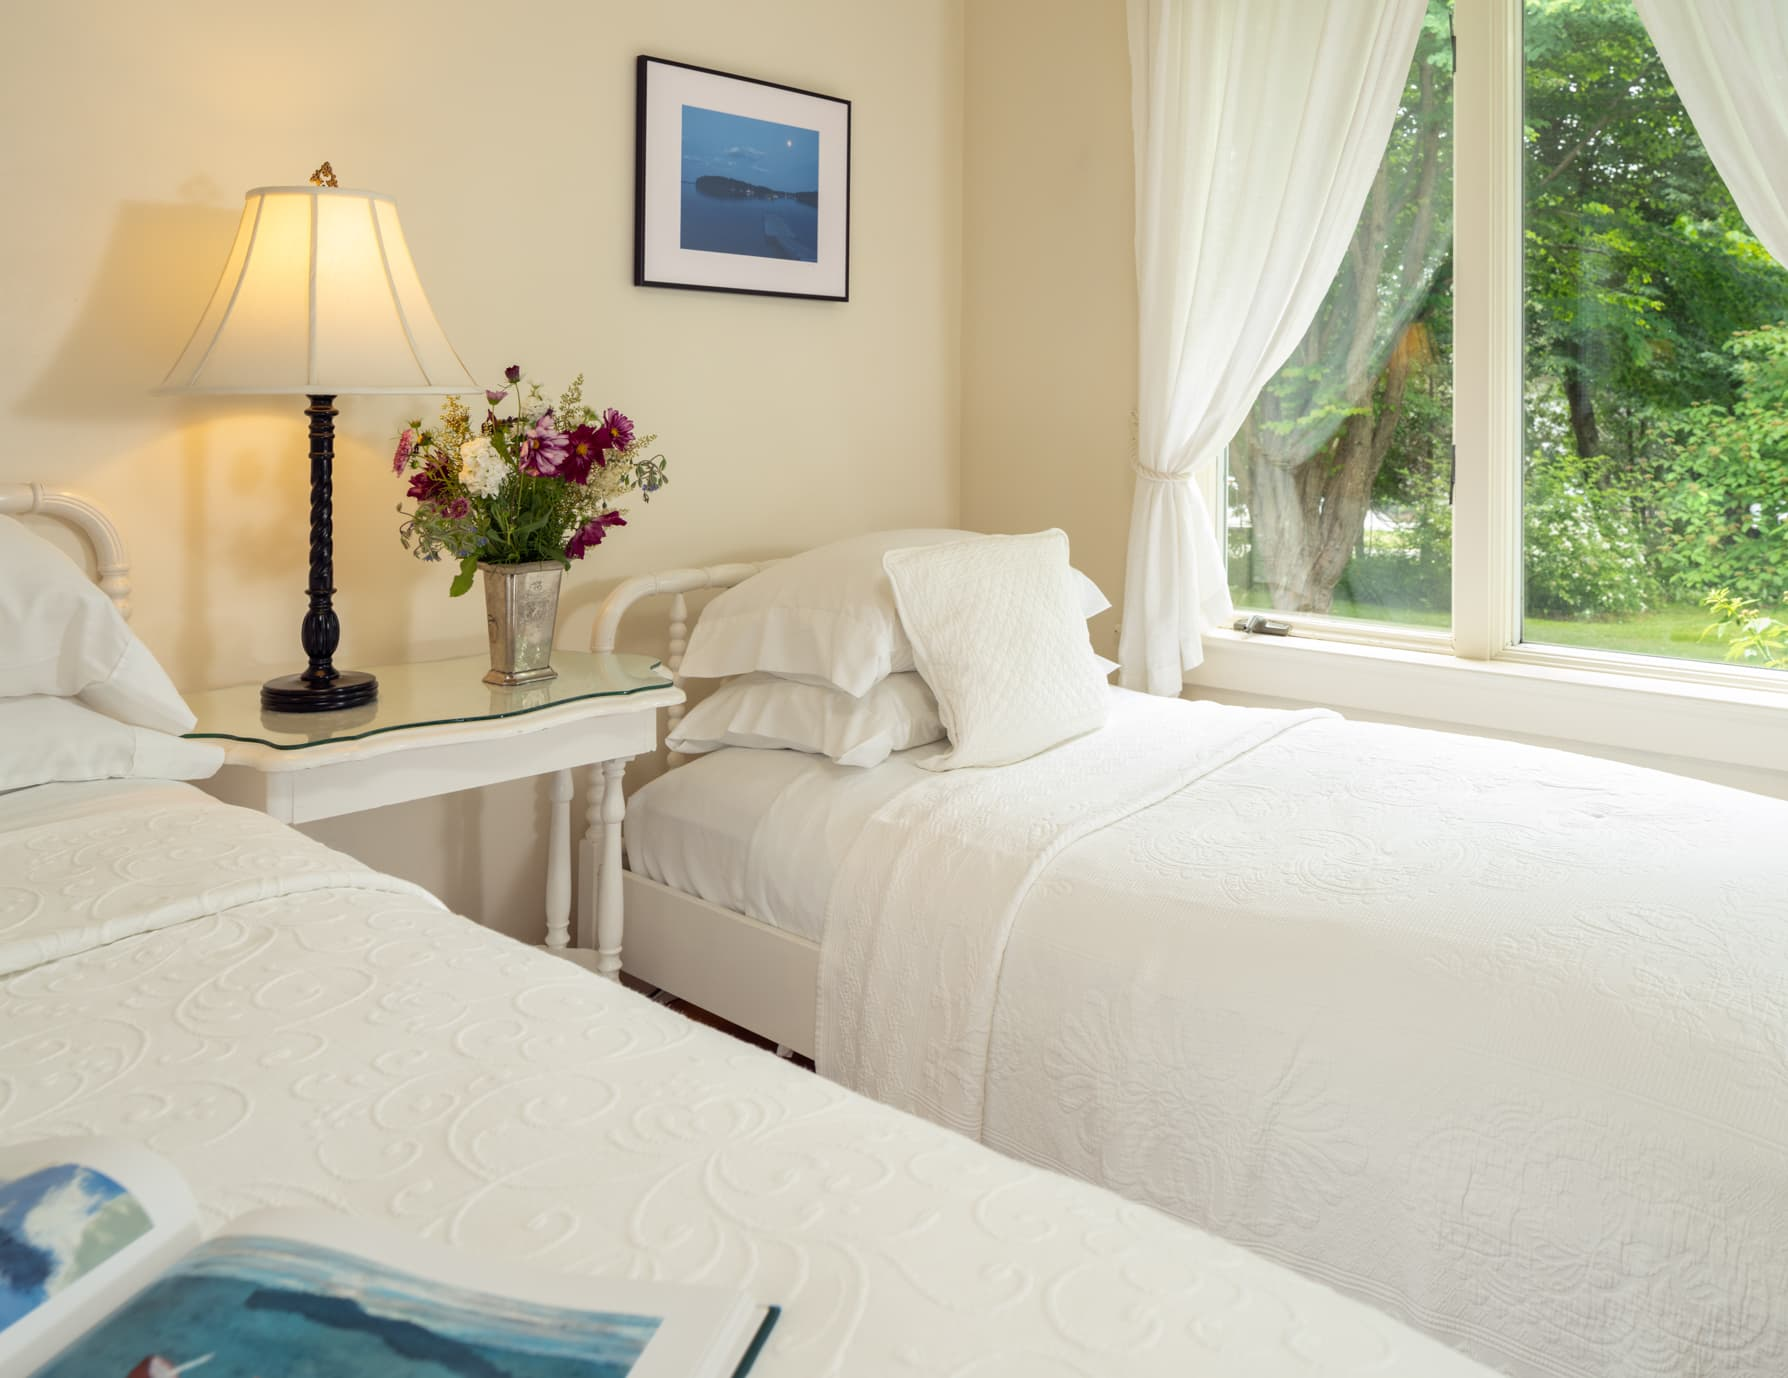 Cape House Studio twin bed next to the window